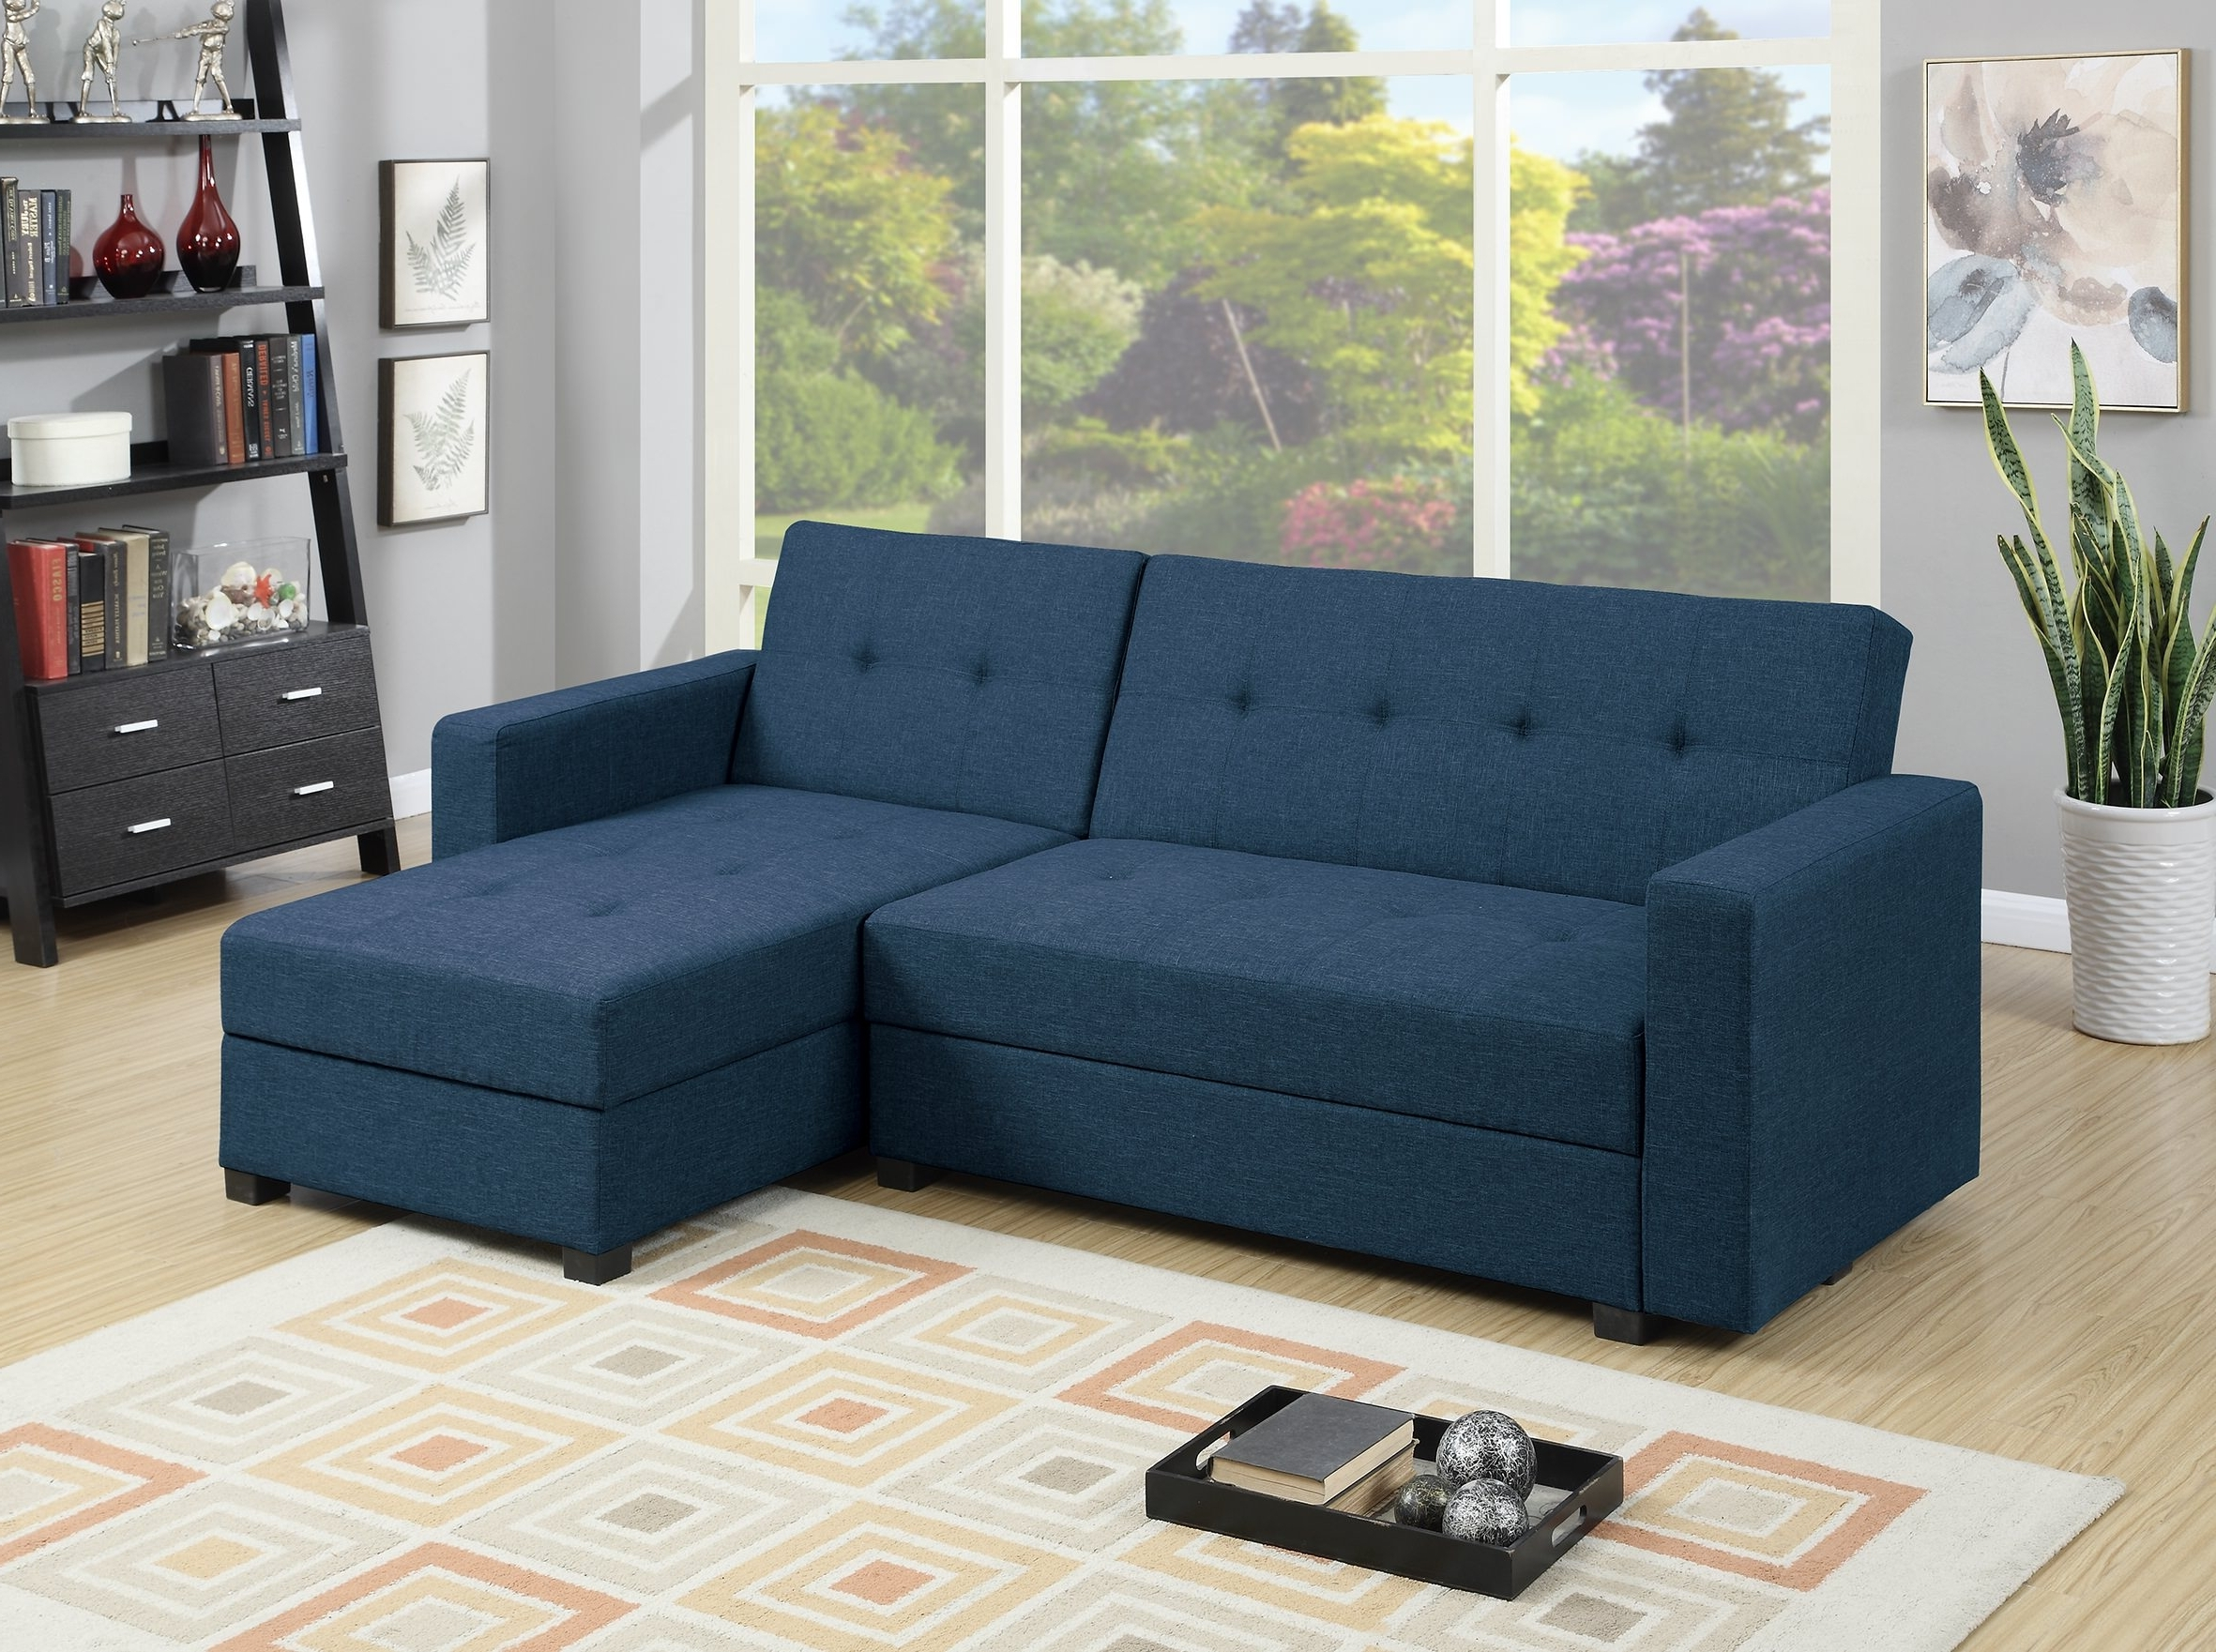 F7895 Navy Blue Reversible Chaise Sectional Sofapoundex Inside Well Known Reversible Chaise Sofas (View 5 of 15)